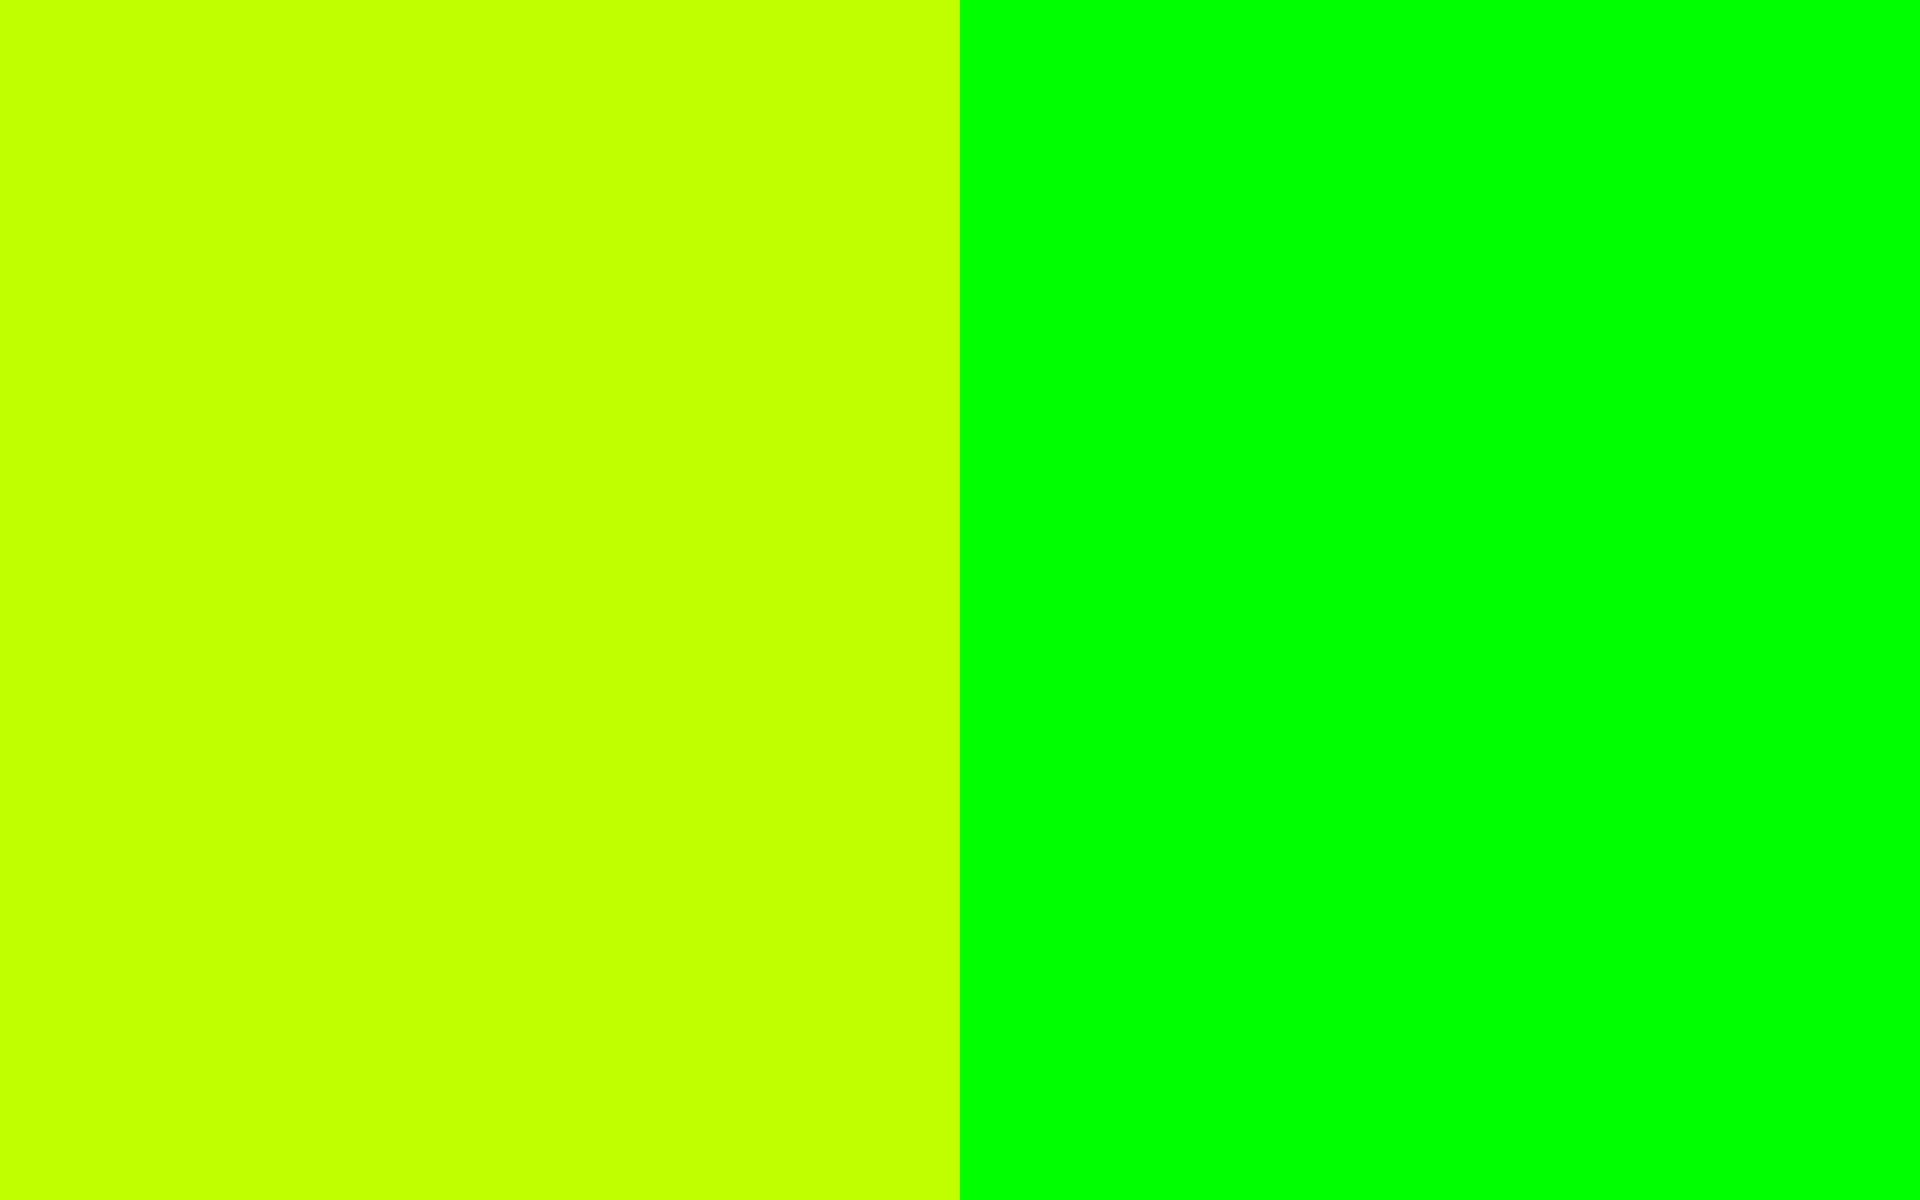 Bright Wallpapers For Iphone 6 Neon Green Background 55 Images